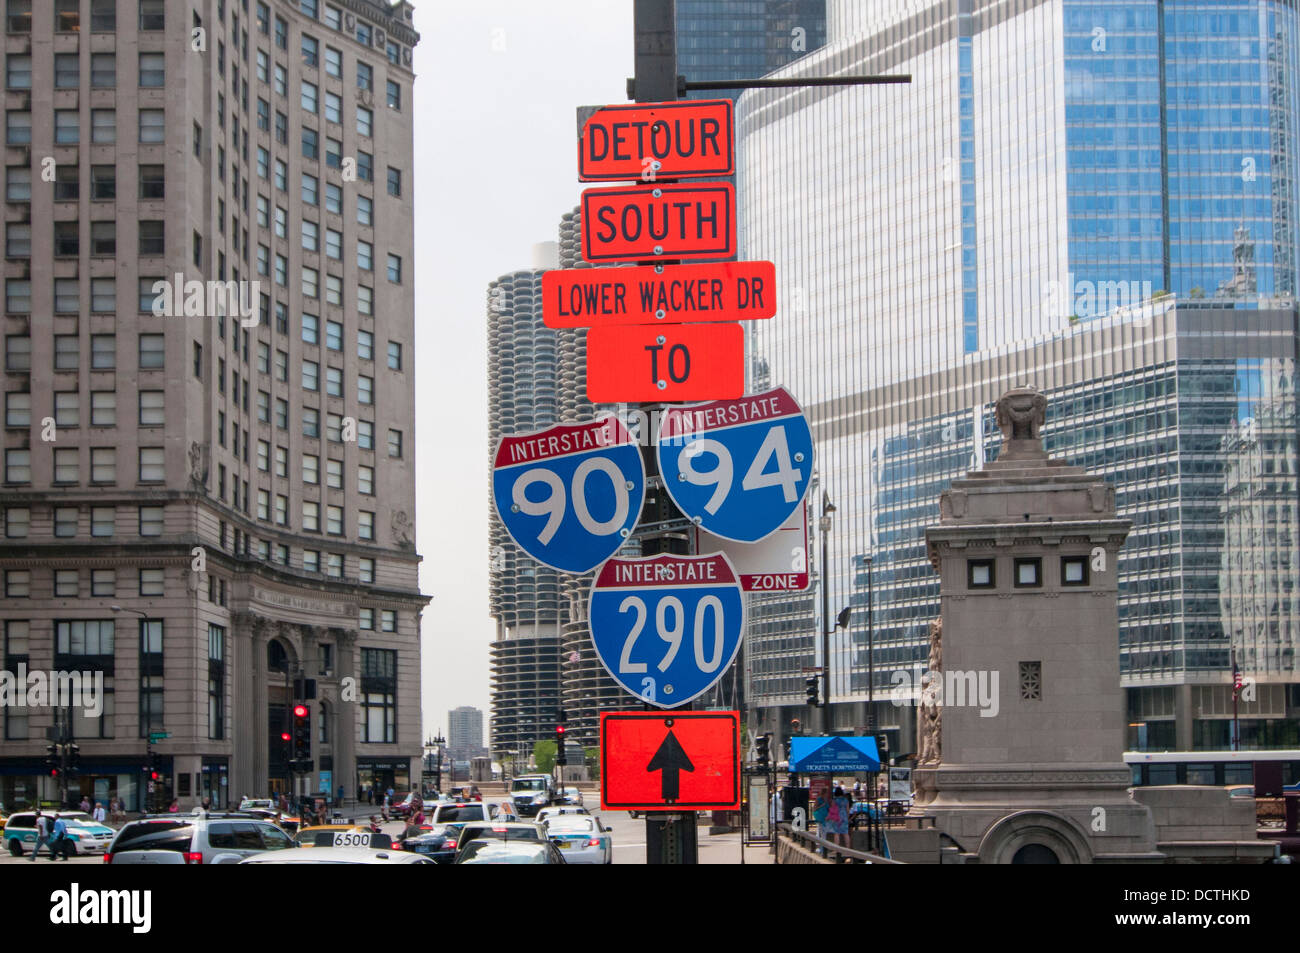 Detour and road signs in Chicago, USA - Stock Image